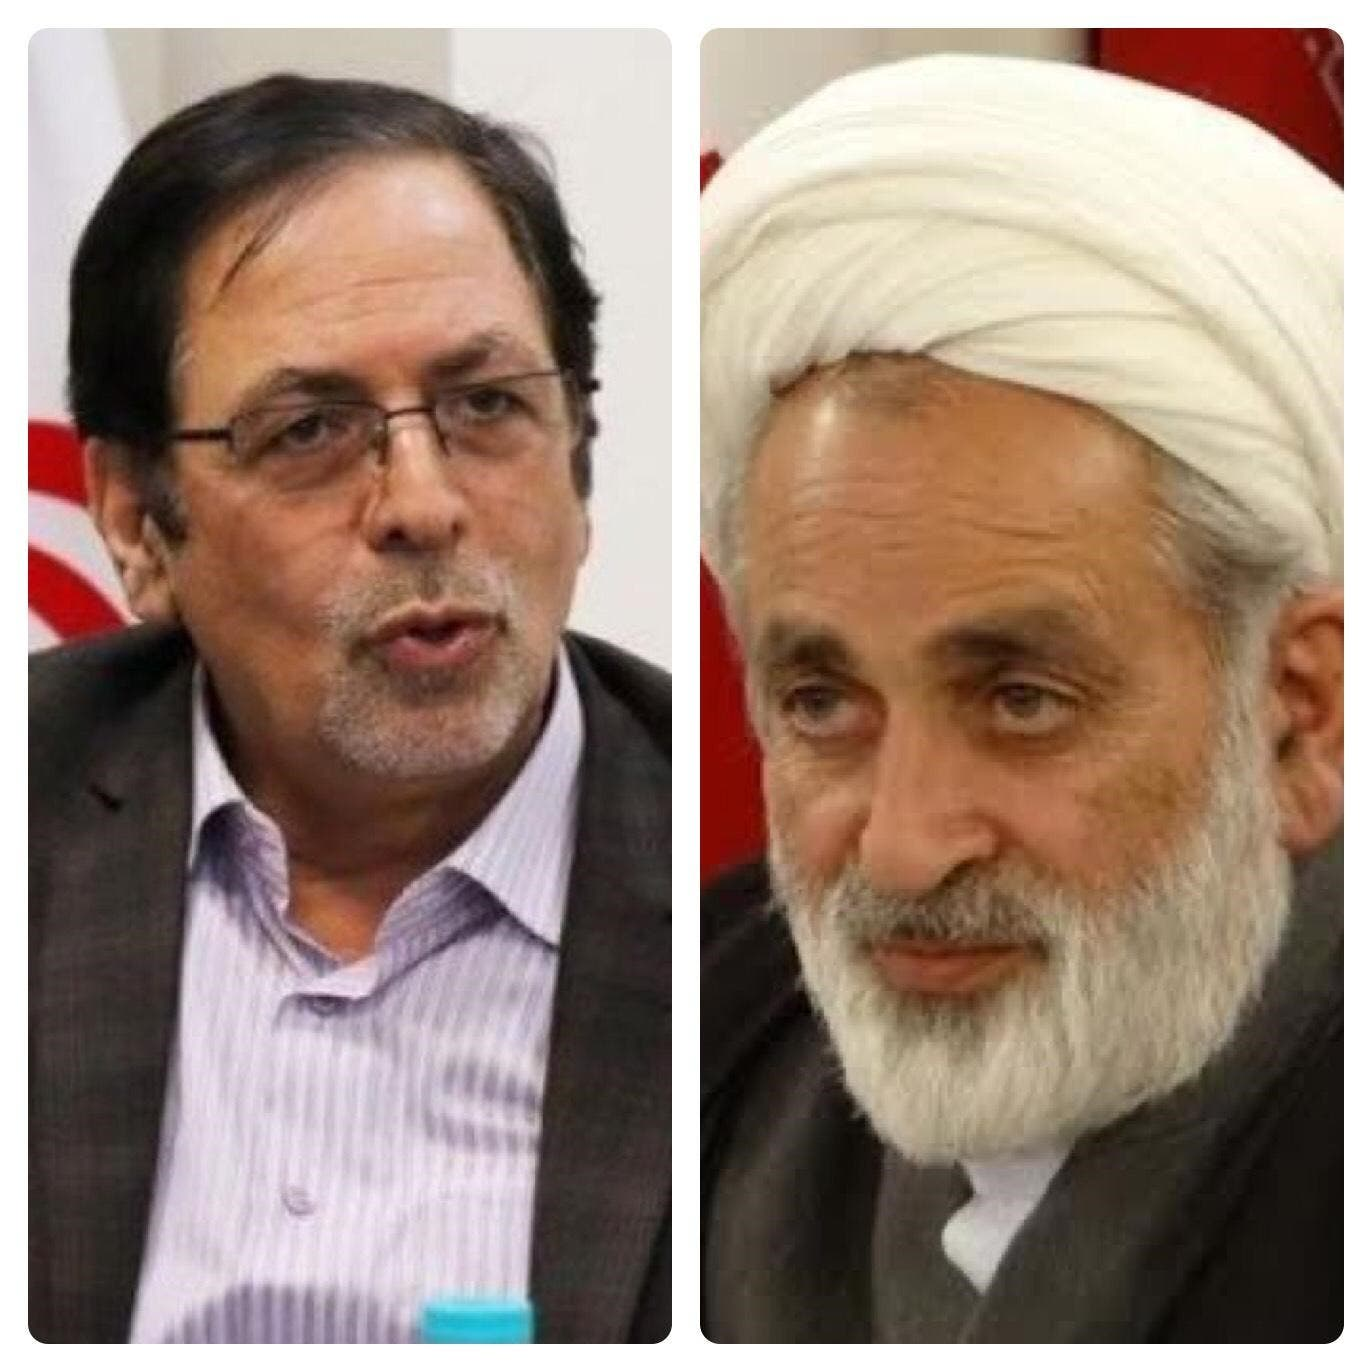 Iranian lawmakers Heidarali Abedi, left, and Ahmad Salek, right. (Twitter)